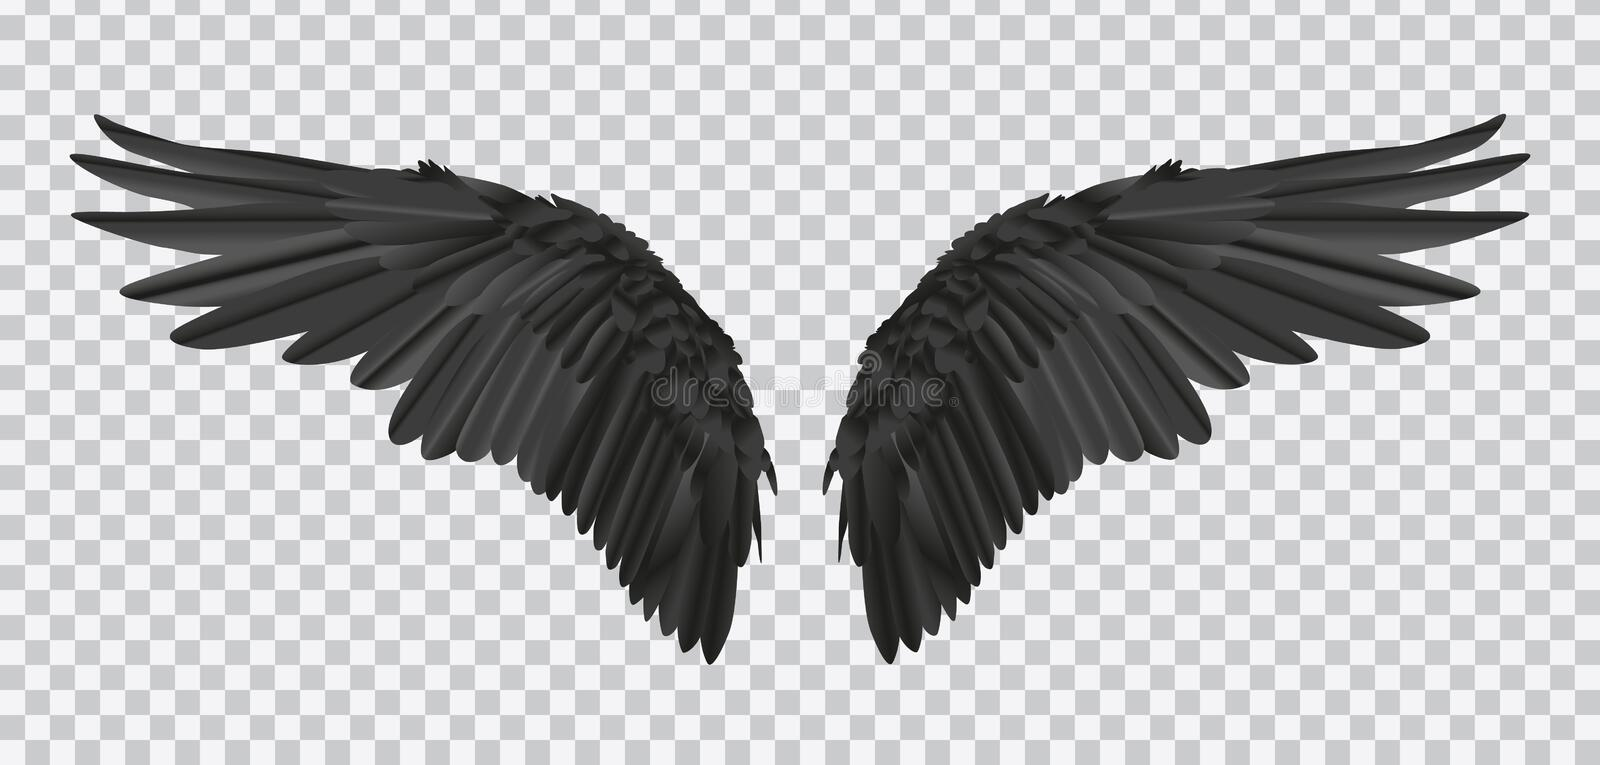 Vector pair of black realistic wings on transparent background vector illustration